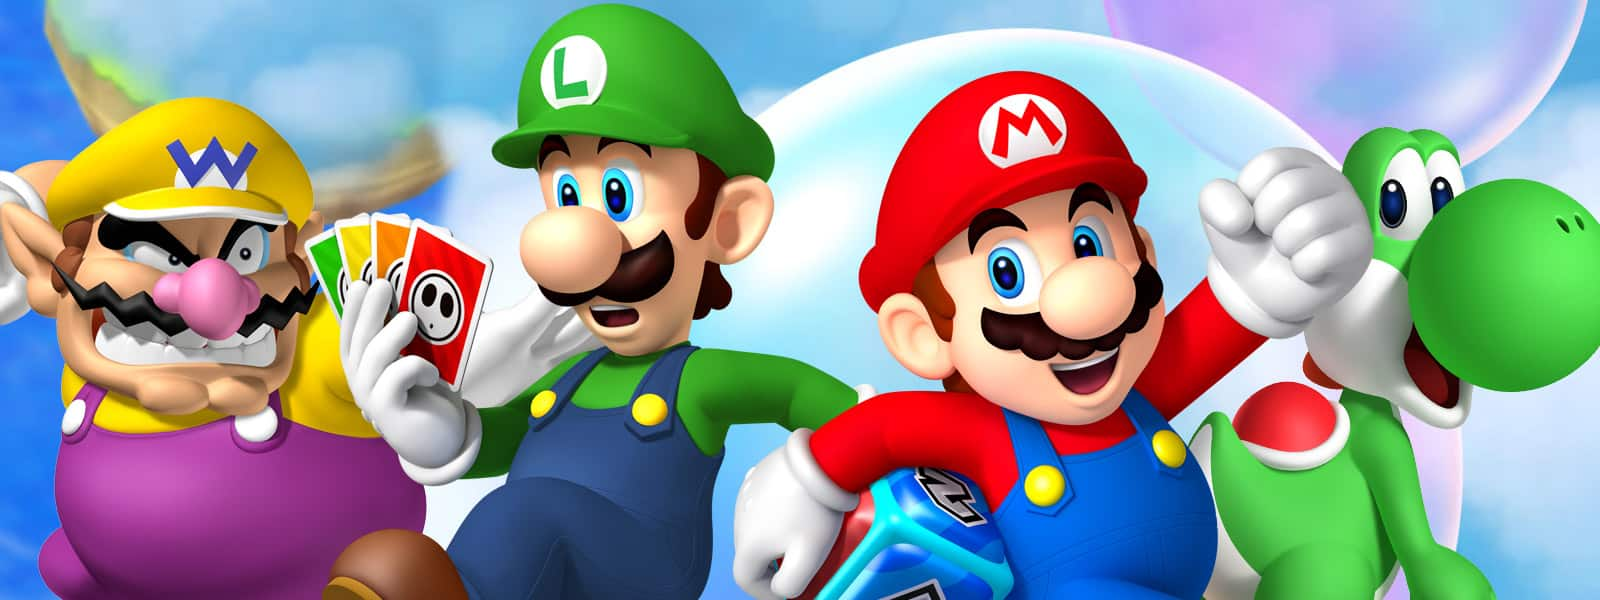 Check Out Every 'Mario' Game In Chronological Order [Video]